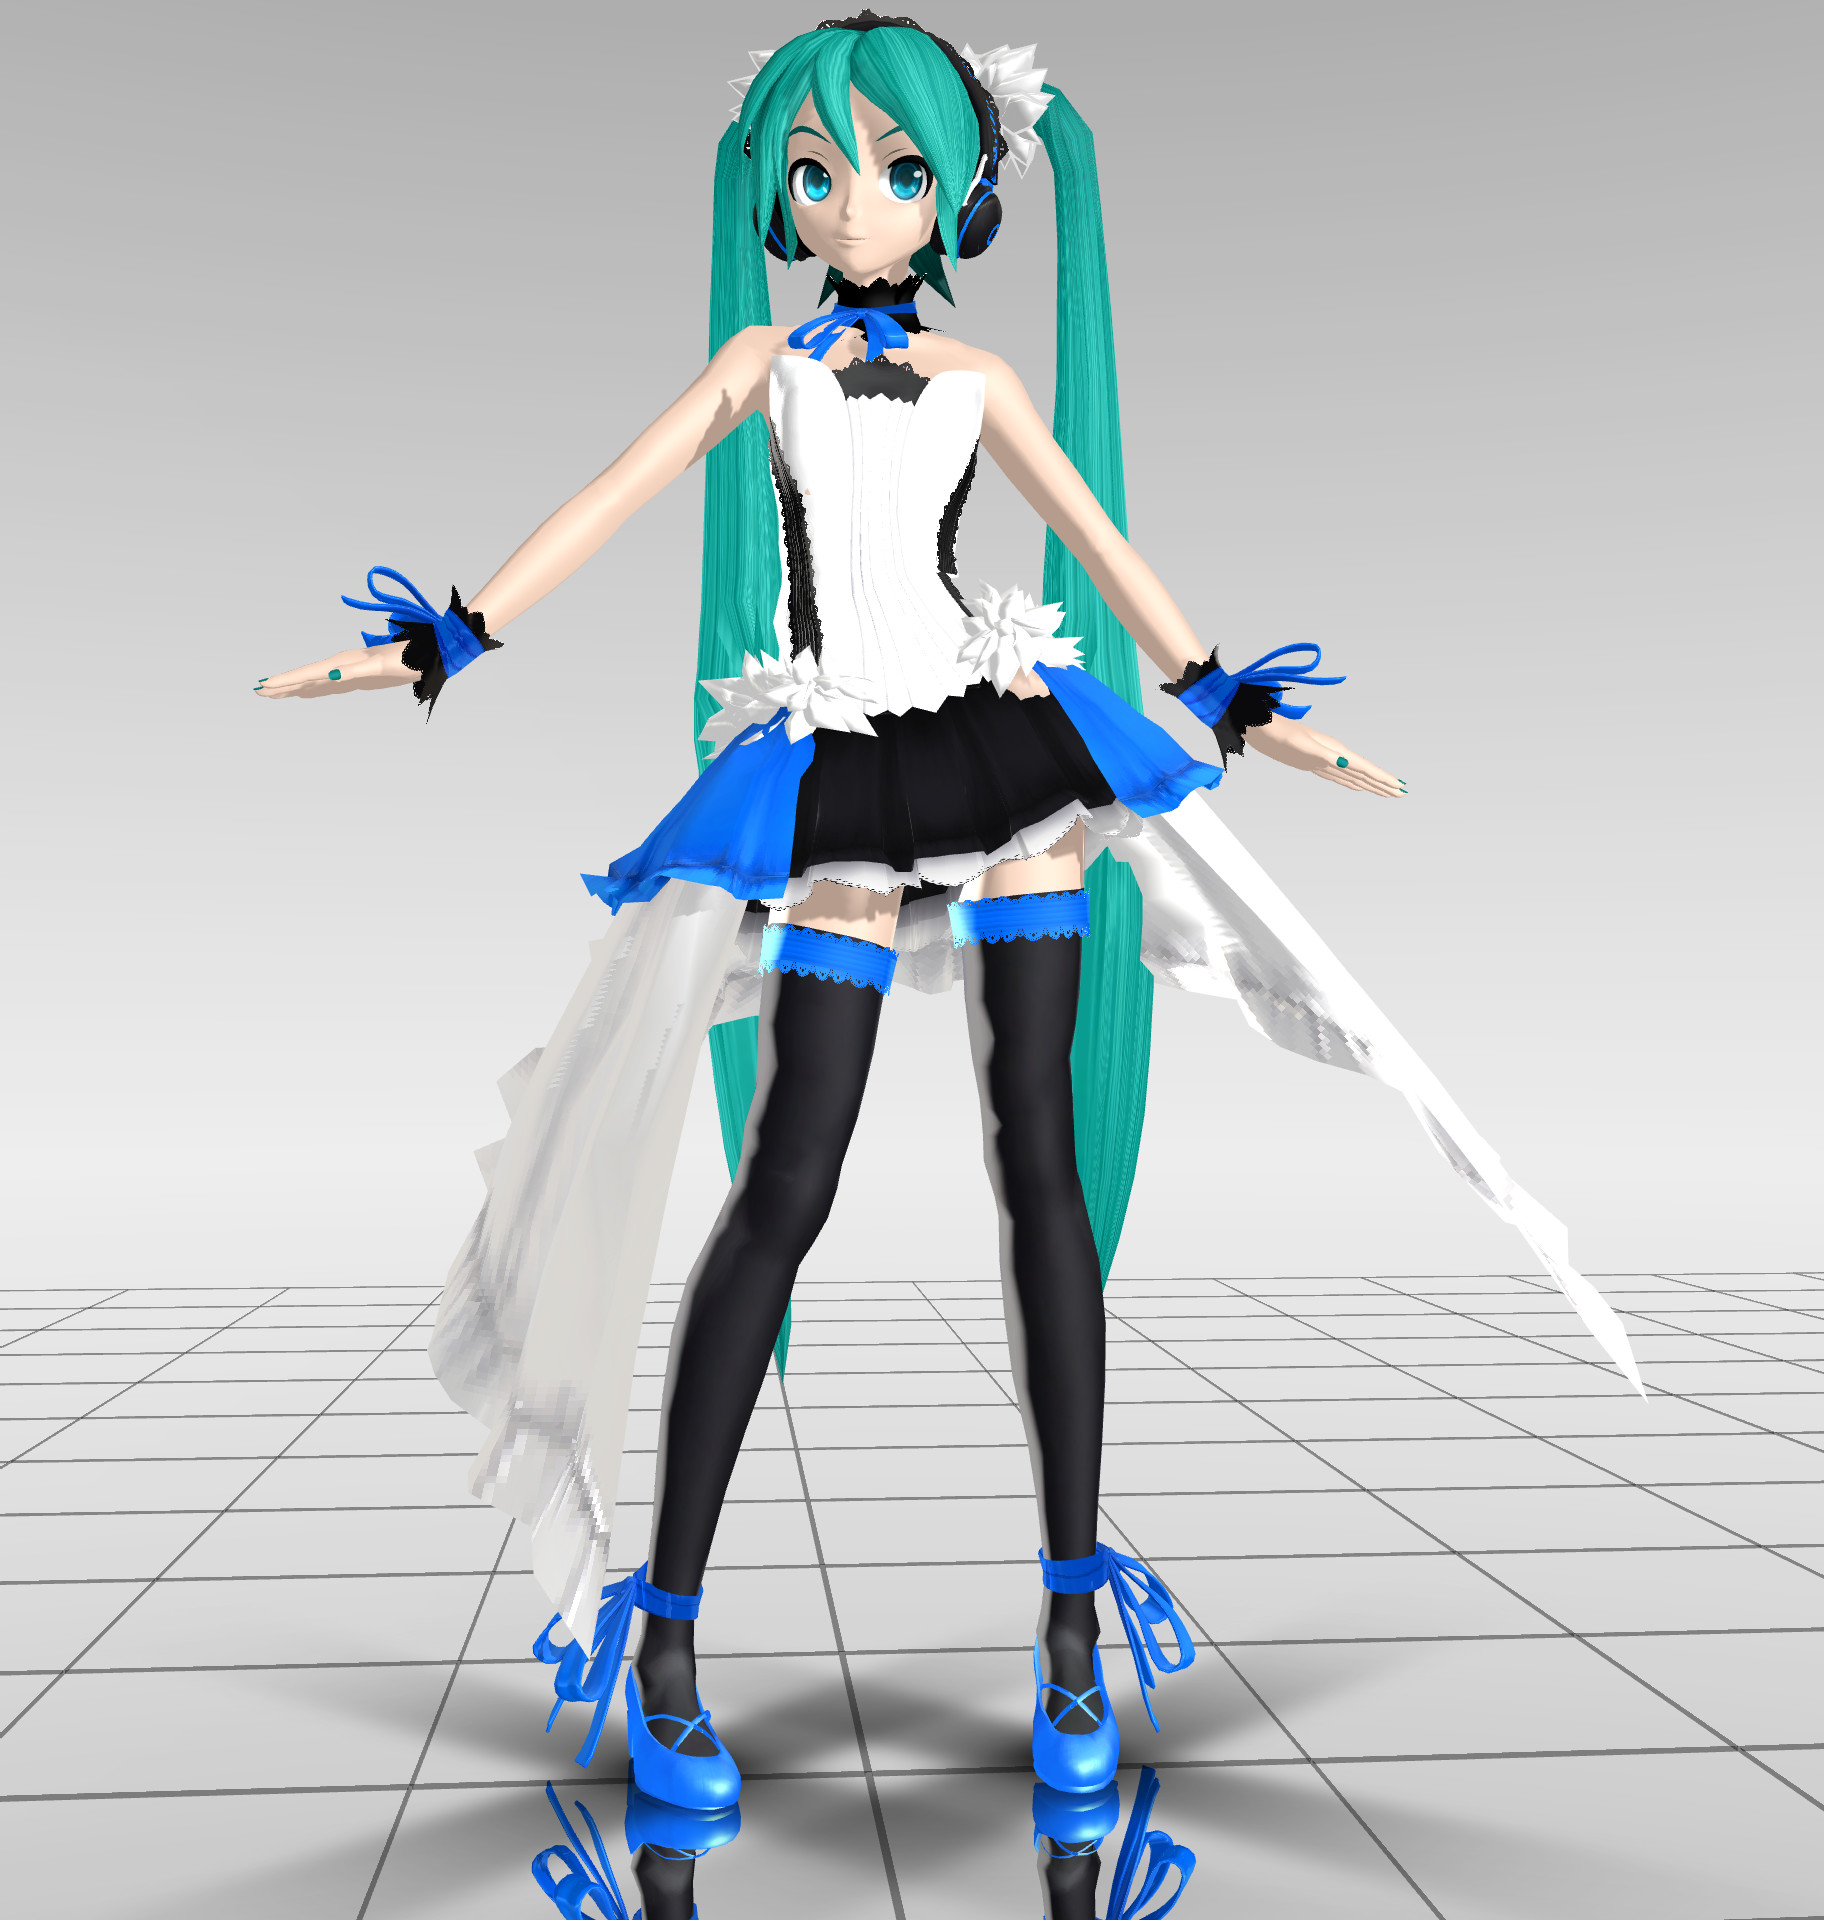 deviantart mmd models download